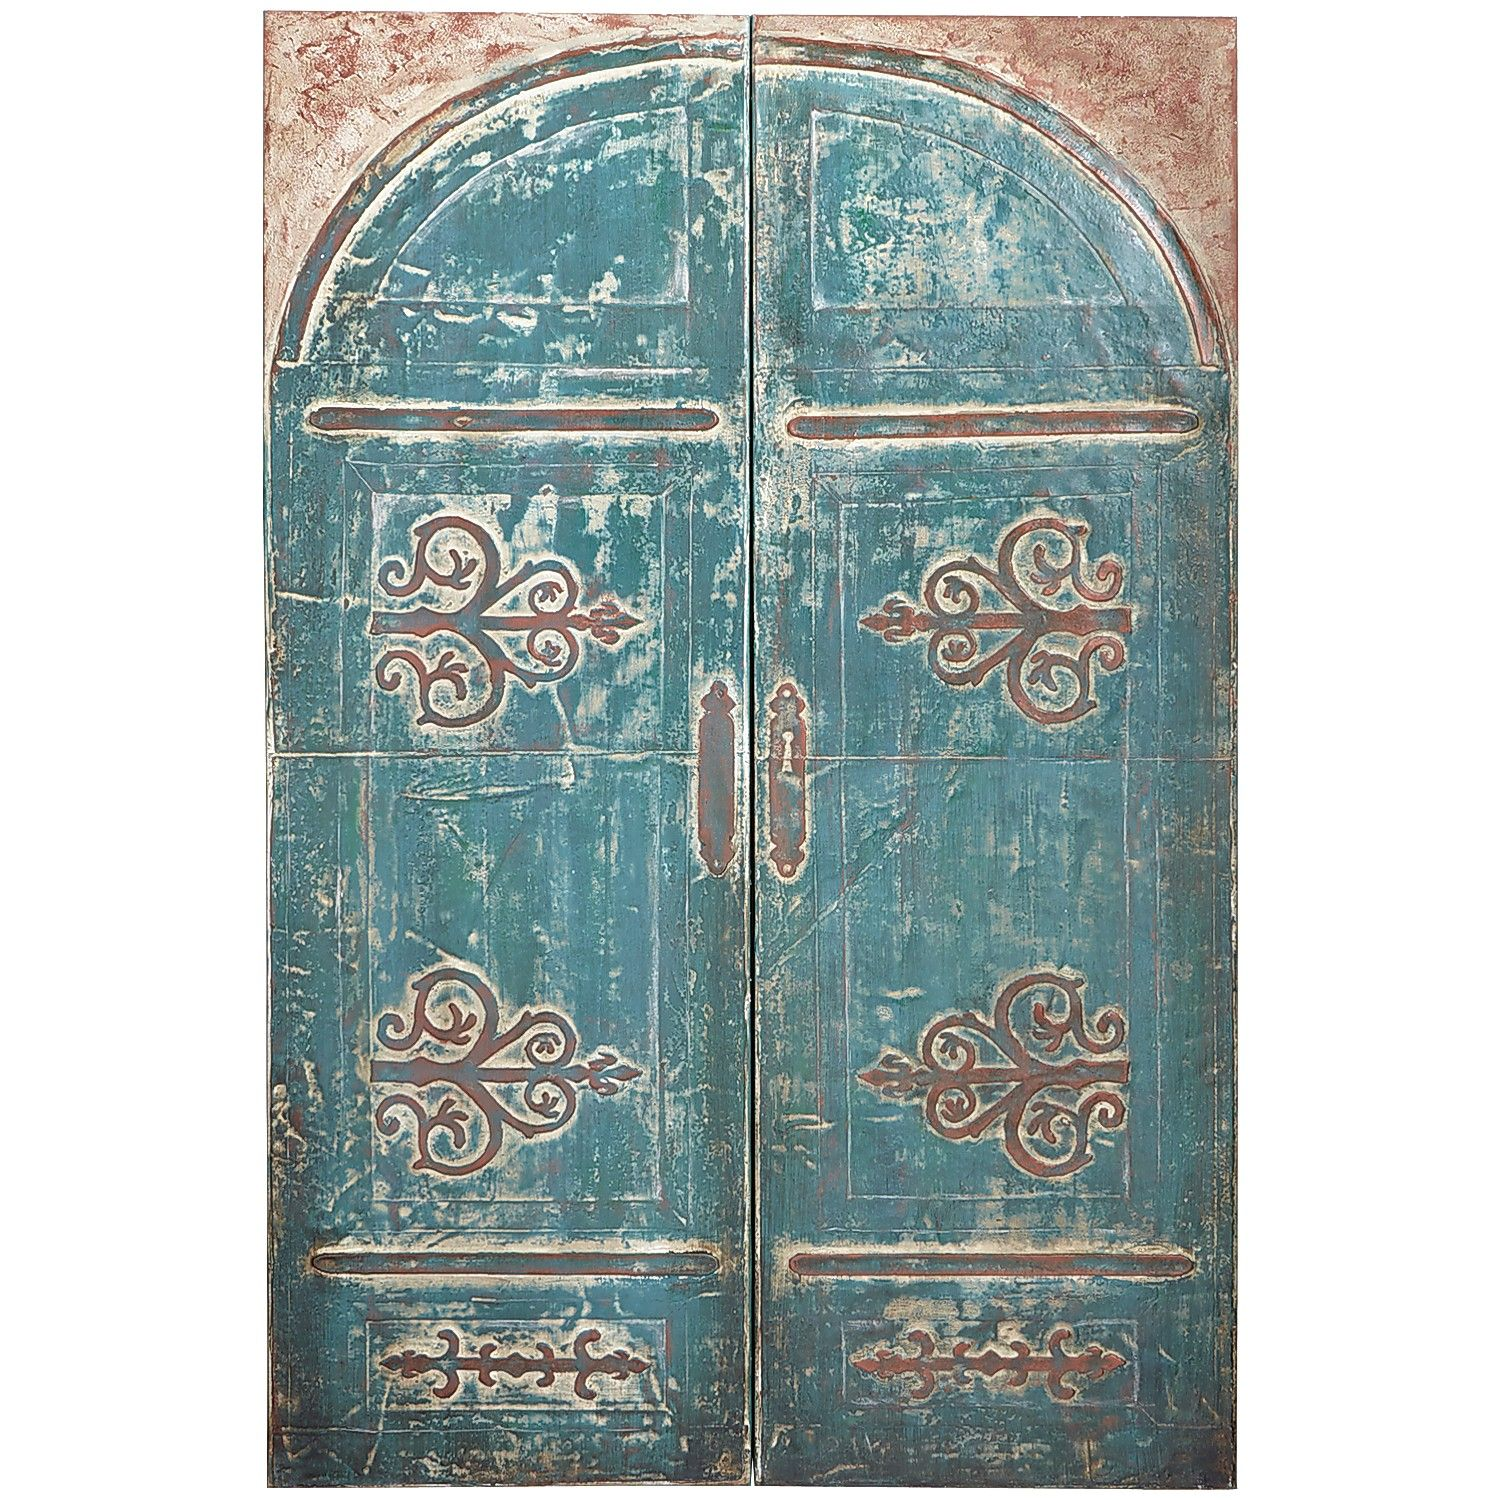 Teal arched doors art decor ue artwork pinterest arch and teal